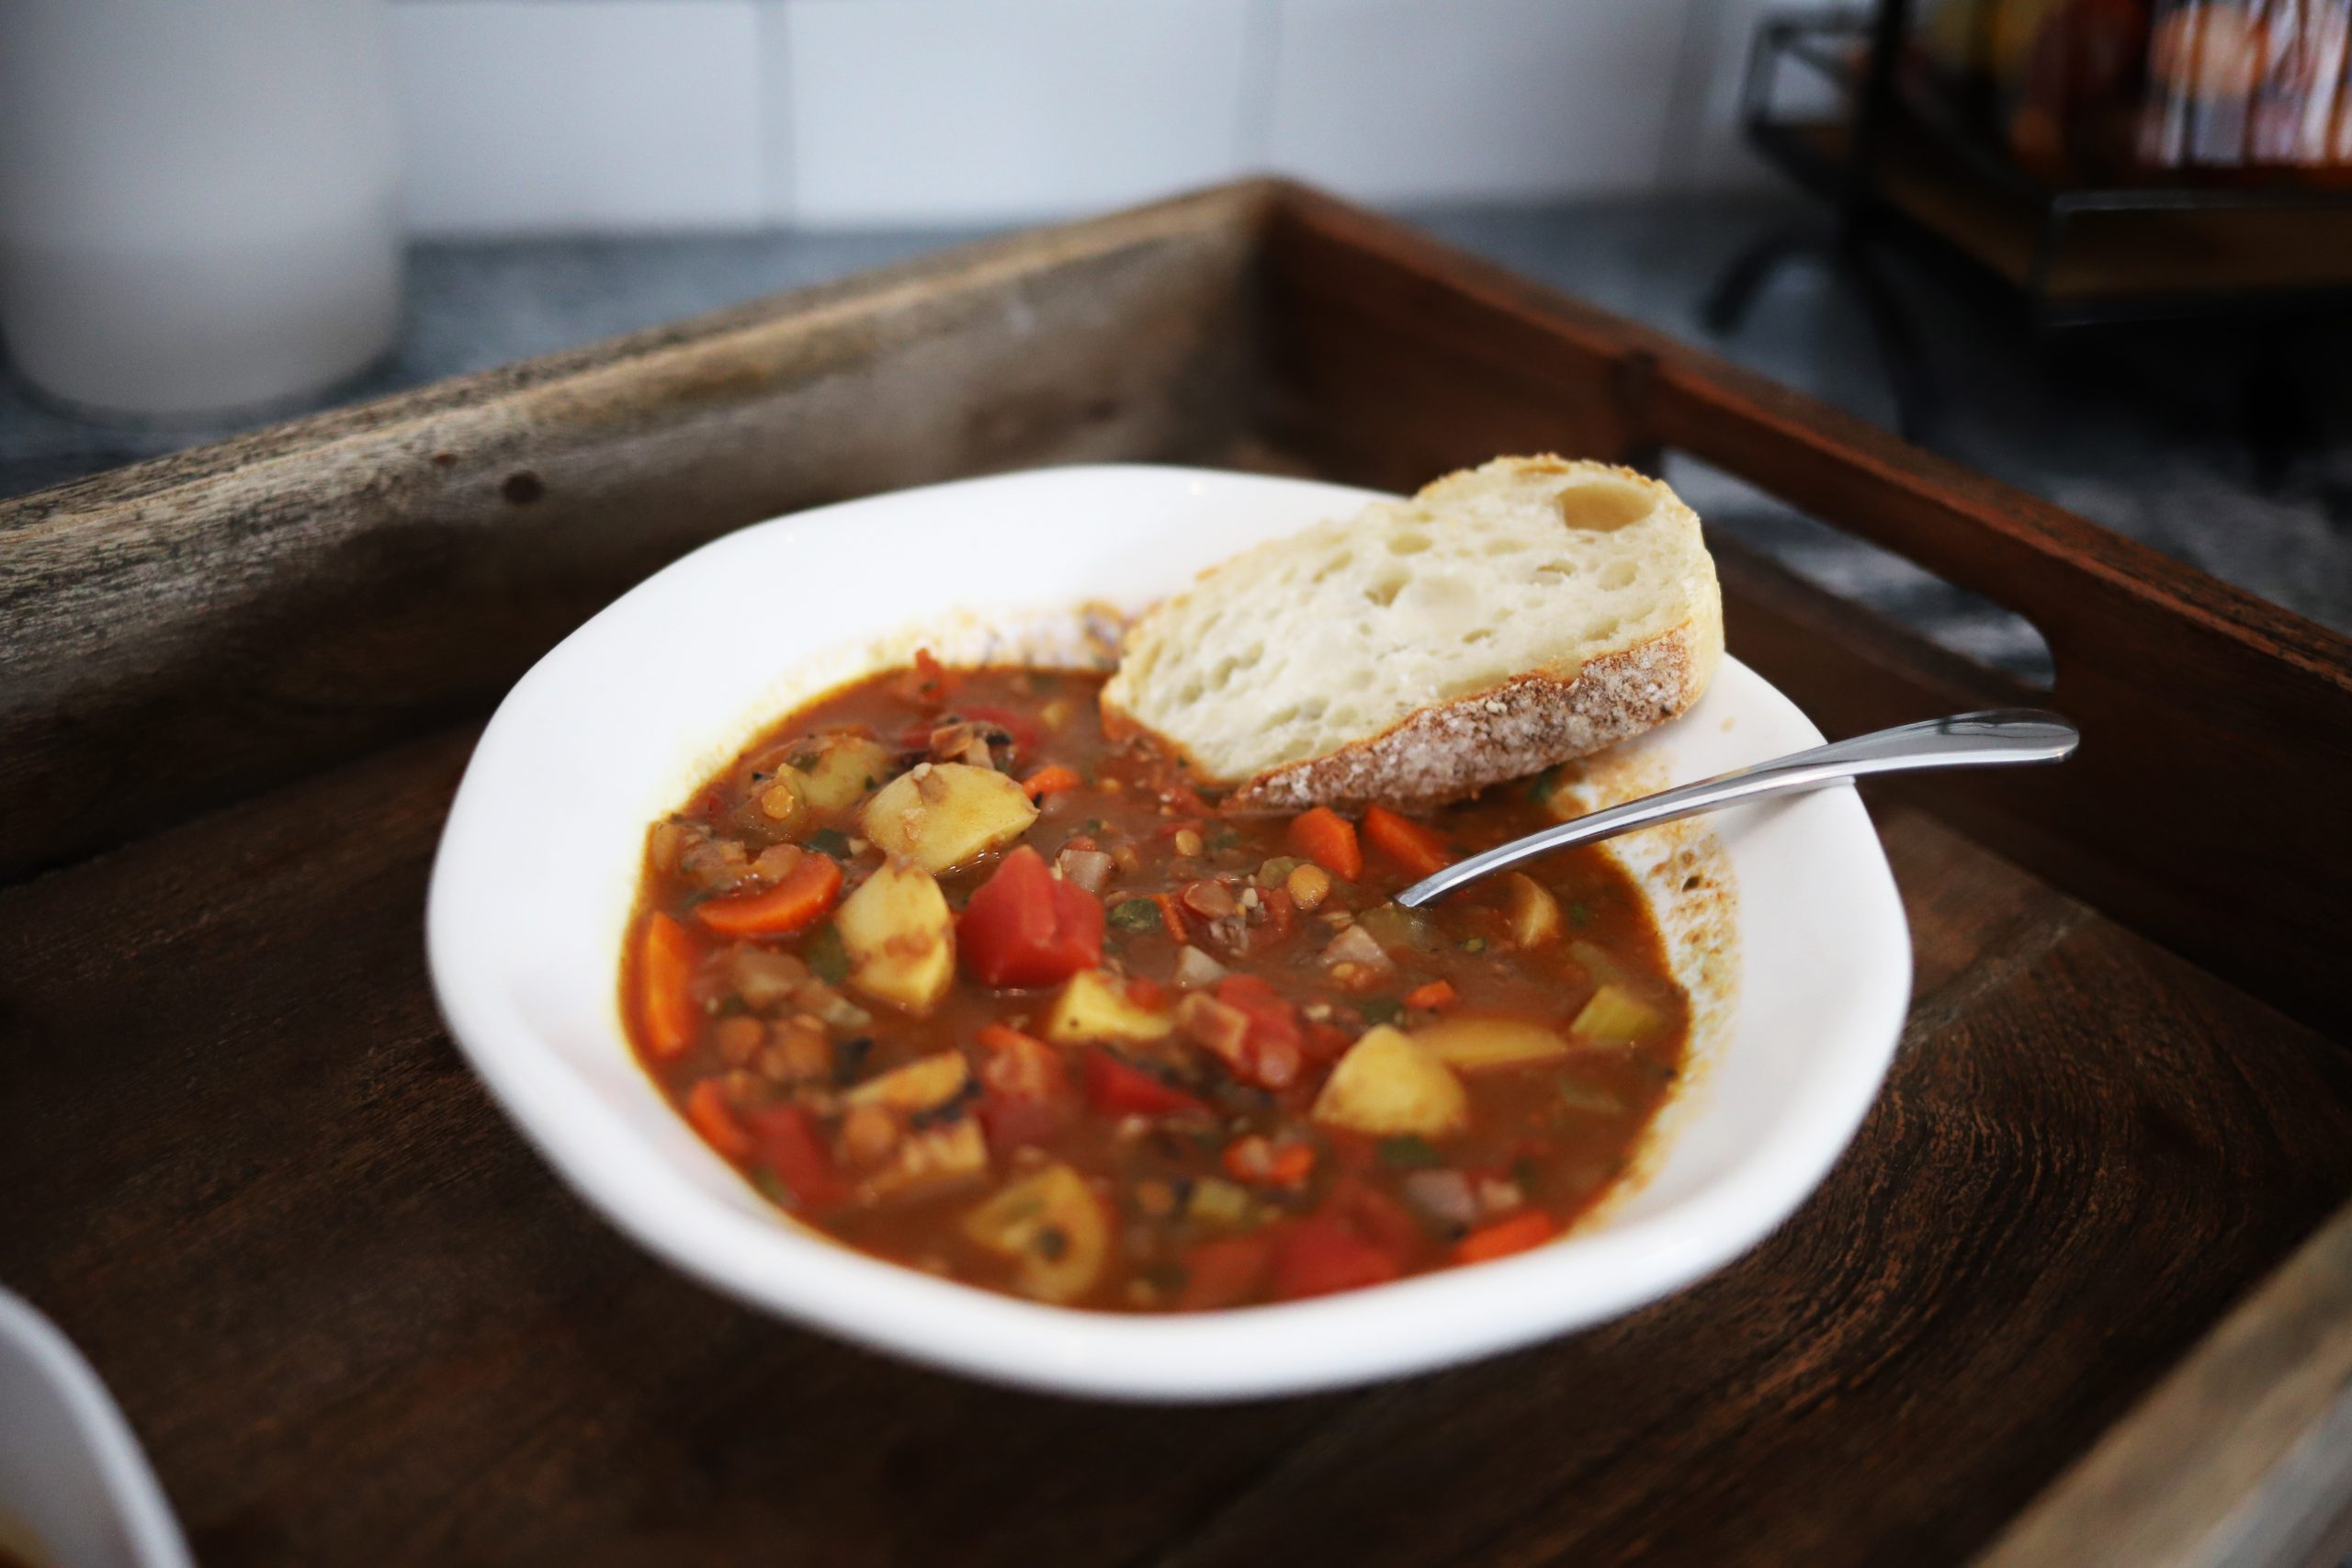 Plant Based, Vegetable Beef-free Stew